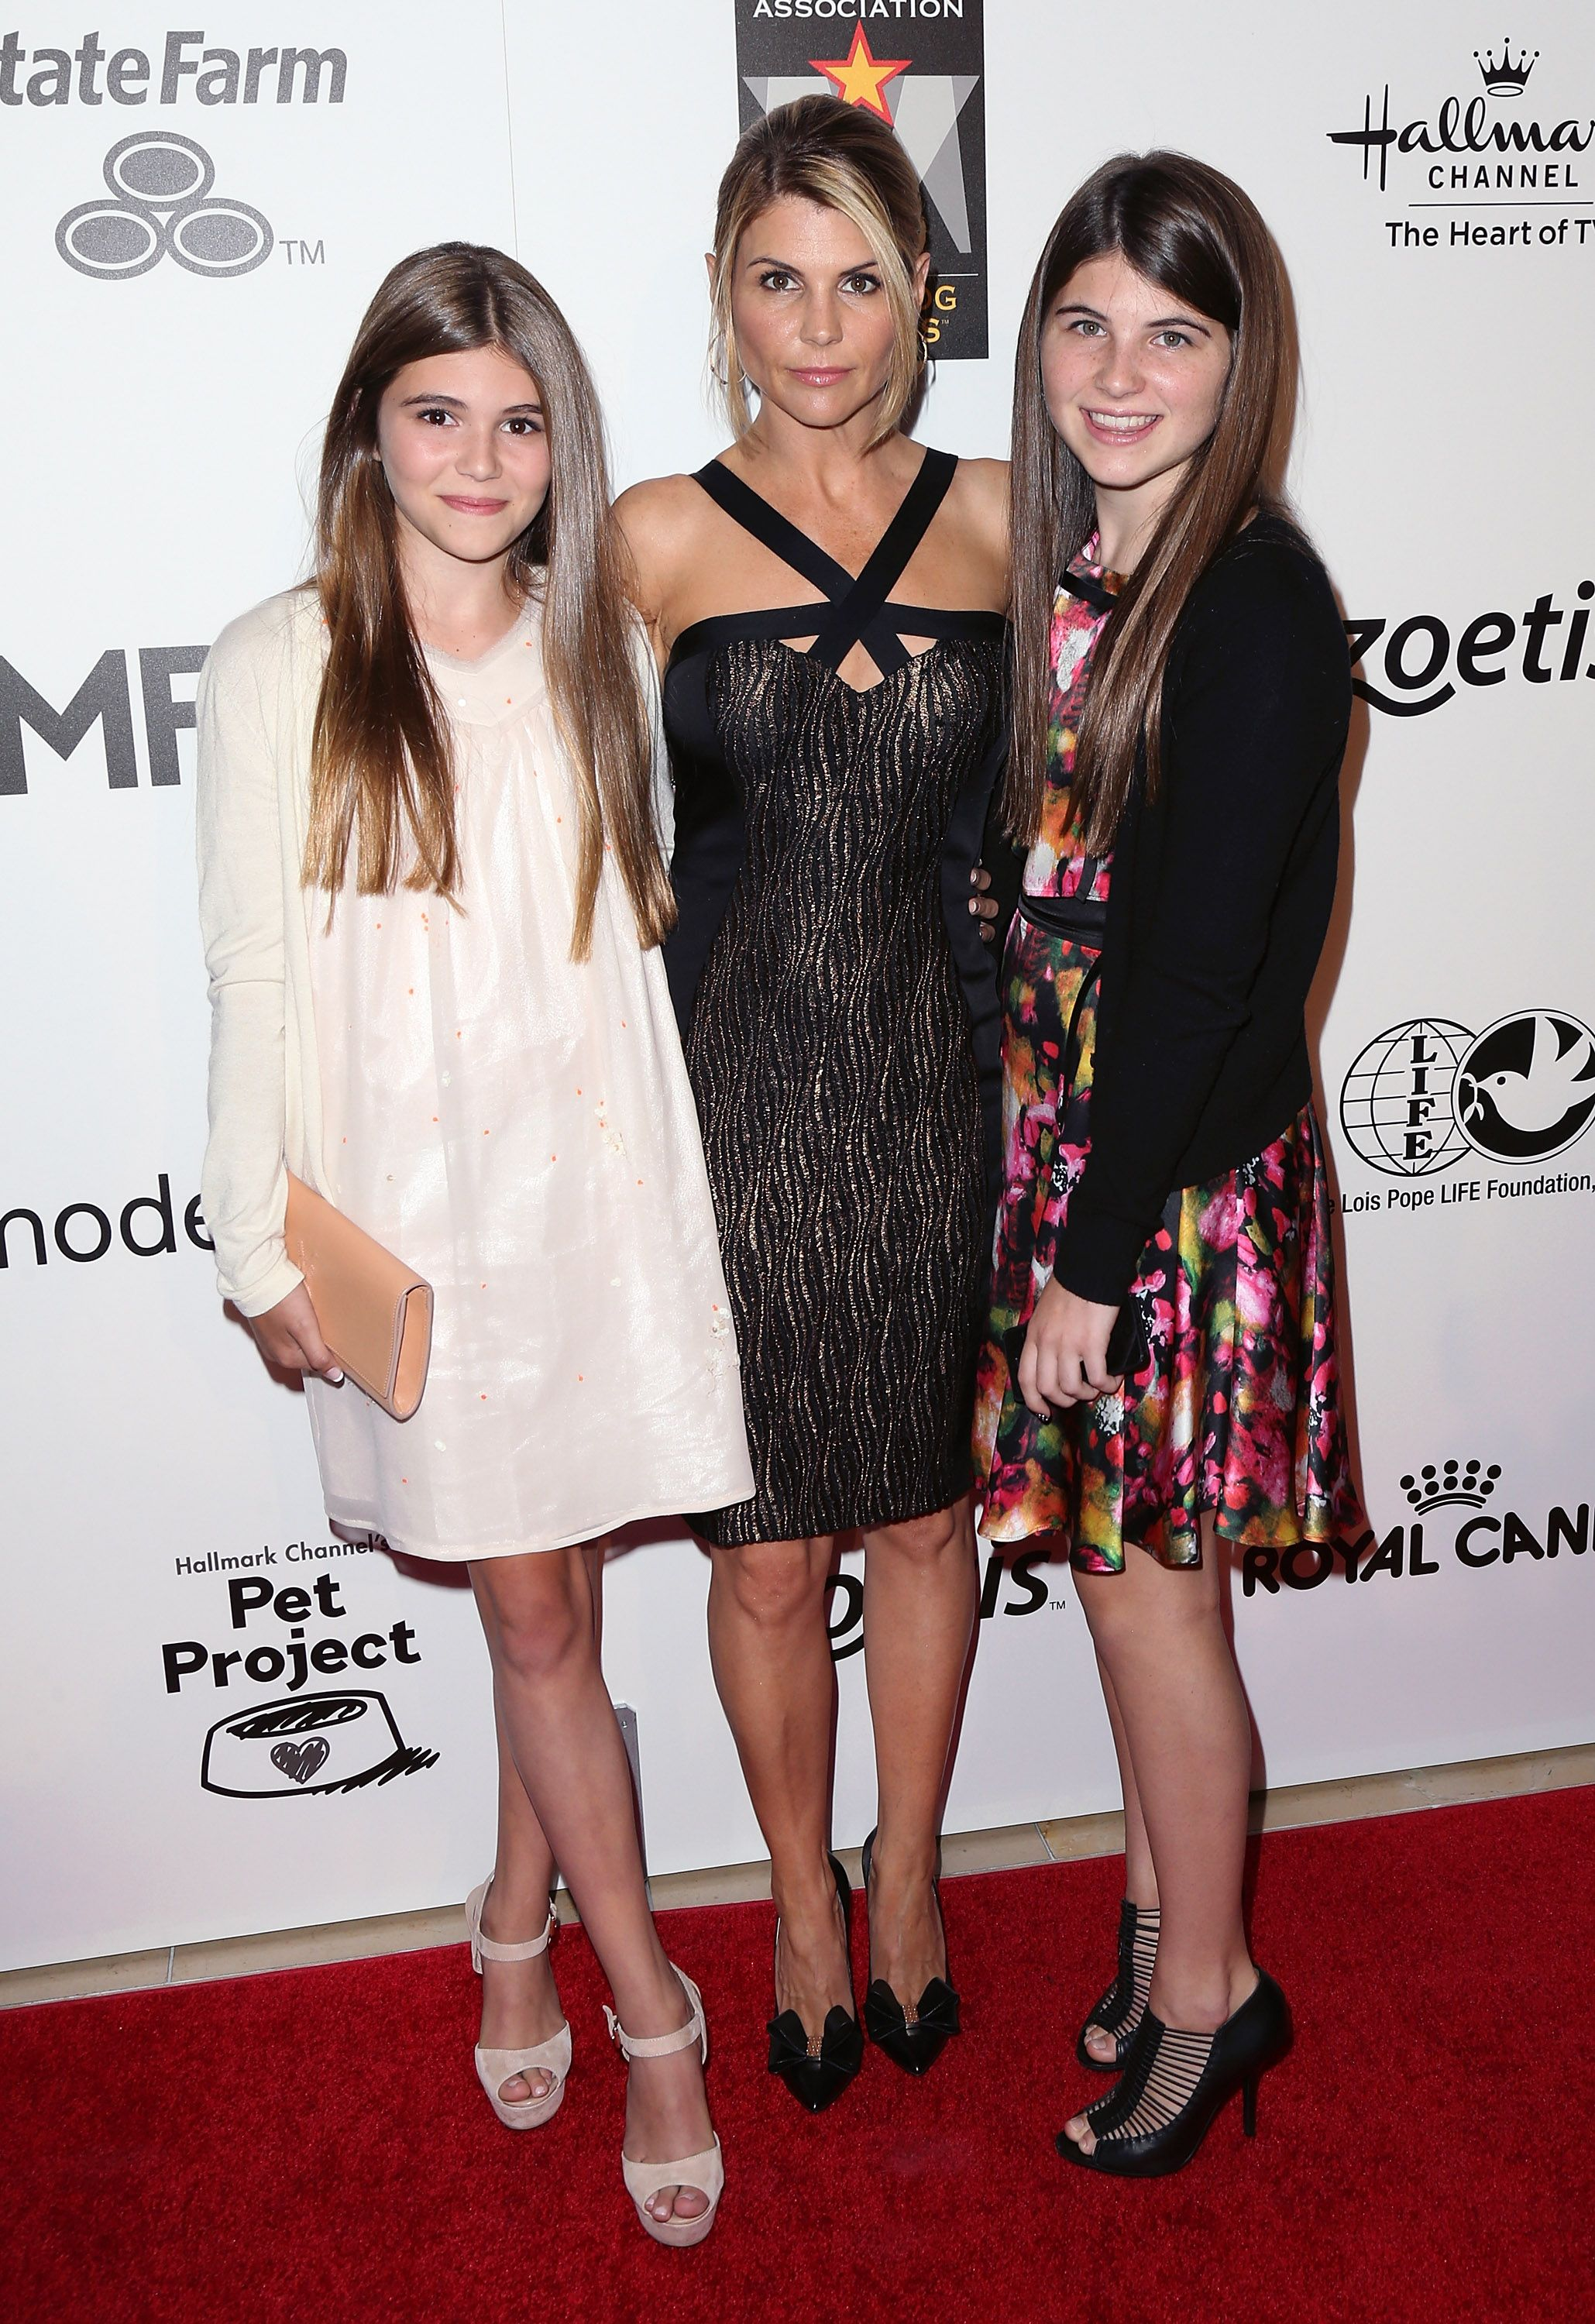 Olivia Giannulli, Lori Loughlin, and Isabella Giannulli at the 3rd Annual American Humane Association Hero Dog Awards on October 5, 2013, in Beverly Hills, California | Photo: David Livingston/Getty Images